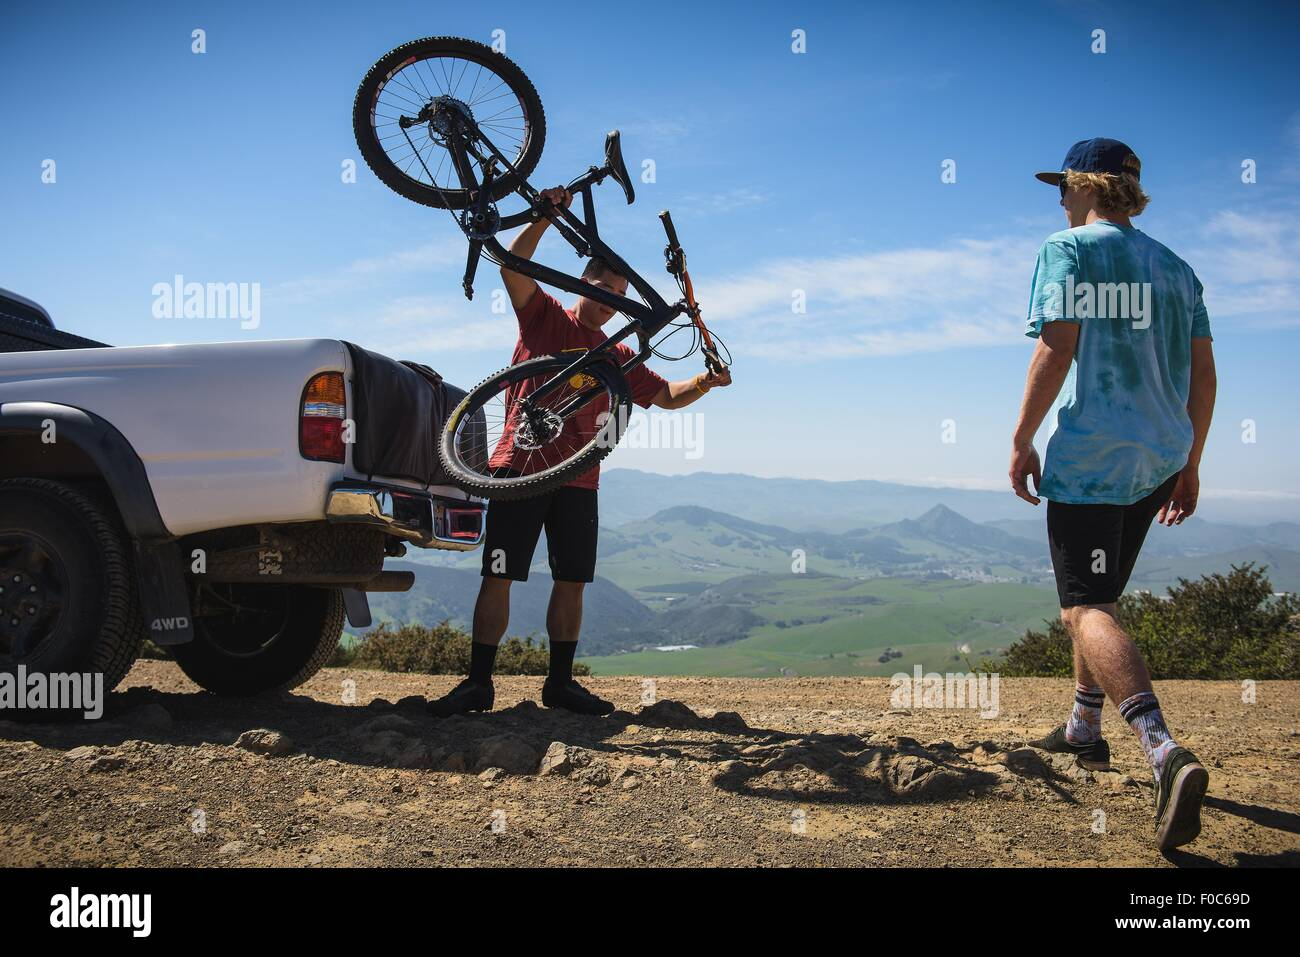 Cyclists preparing for mountain biking, San Luis Obispo, California, United States of America - Stock Image